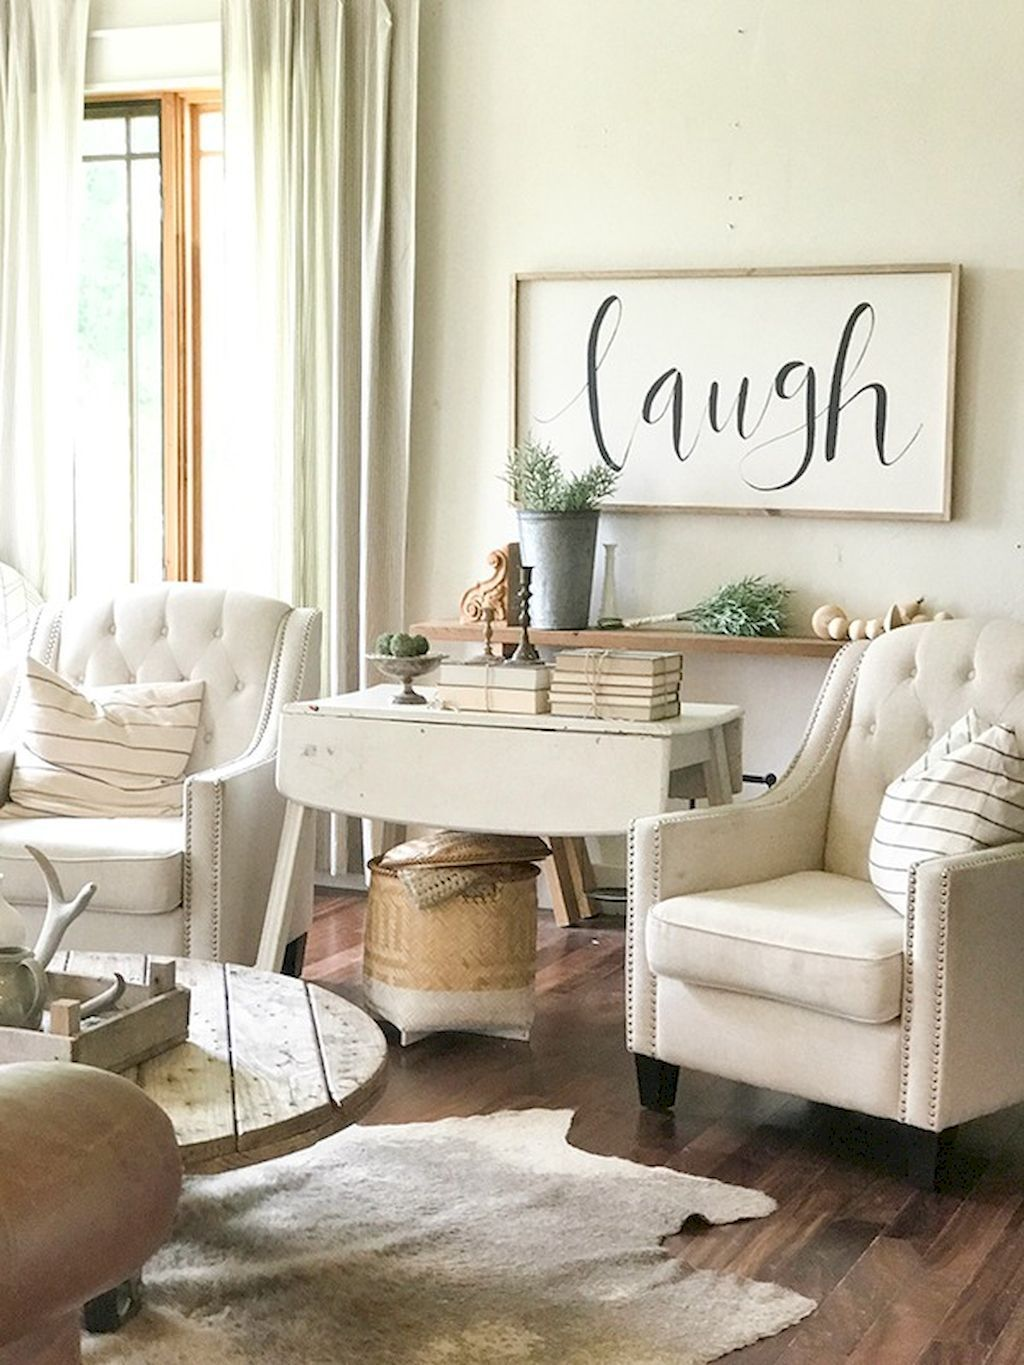 50 Rustic Farmhouse Living Room Design and Decoration Ideas images